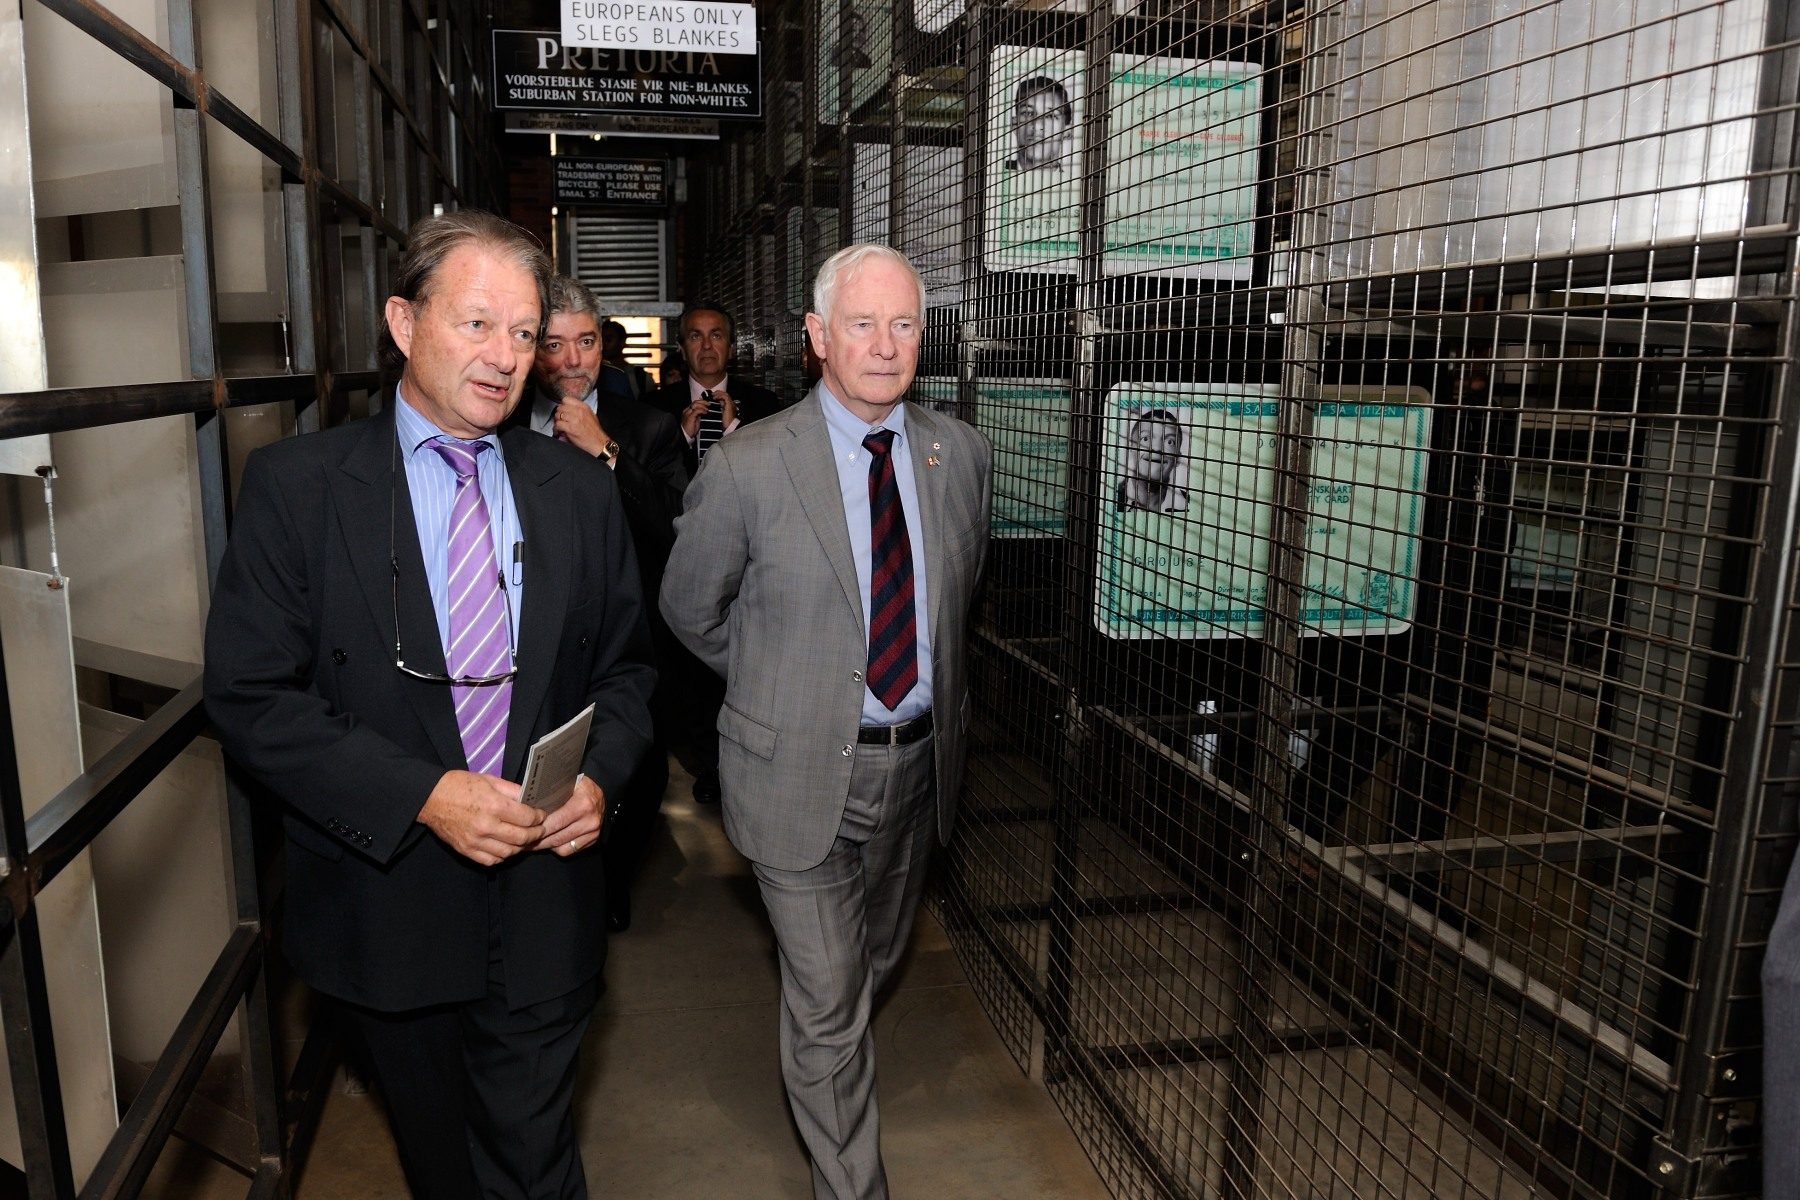 Later that morning,the Governor General visited the Apartheid Museum in Johannesburg. He was accompanied by Mr. Christopher Till, Director of the Apartheid Museum.